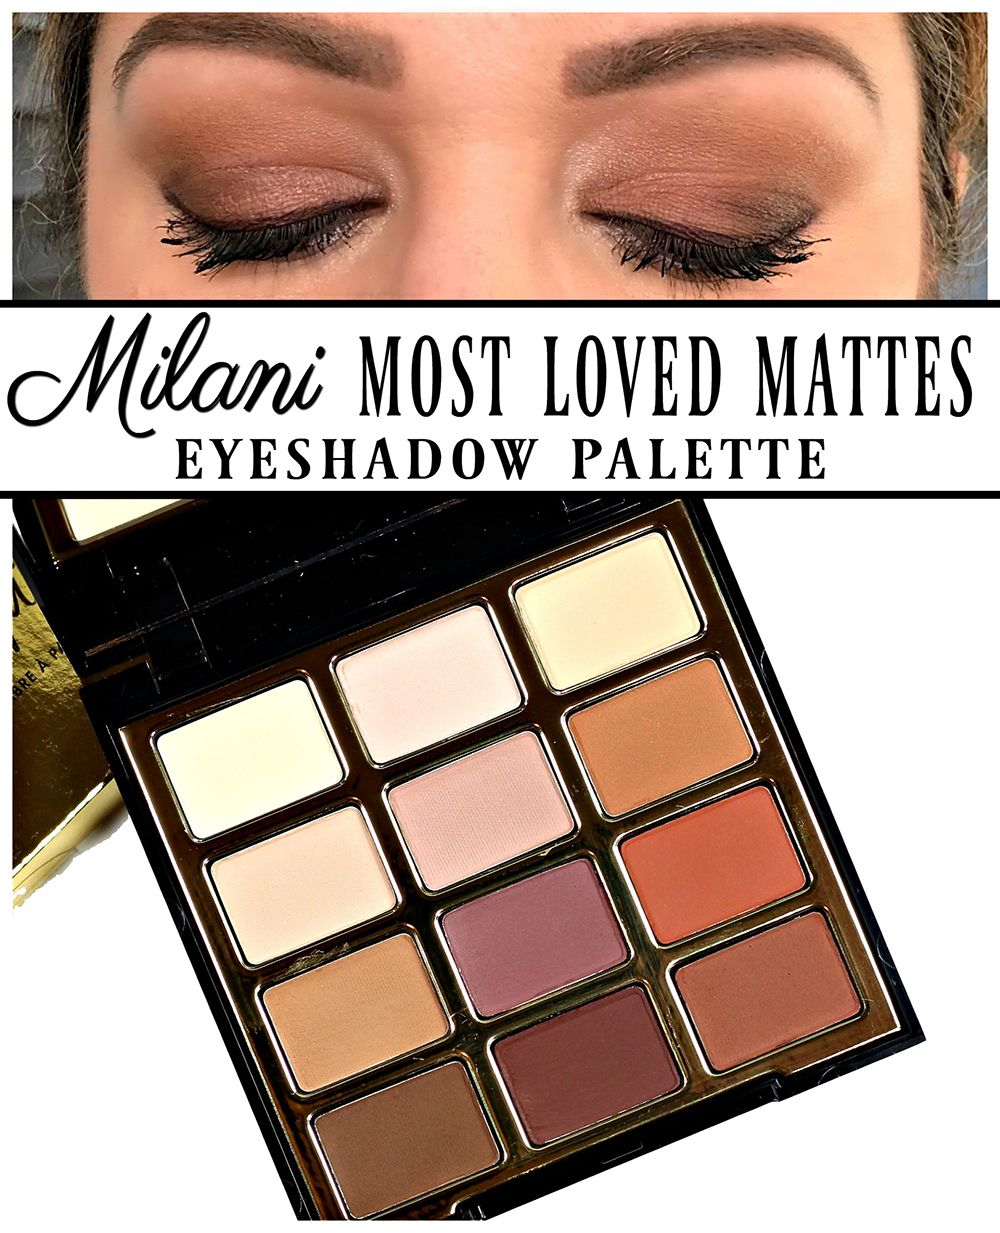 milani most loved mattes eyeshadow palette swatches, review